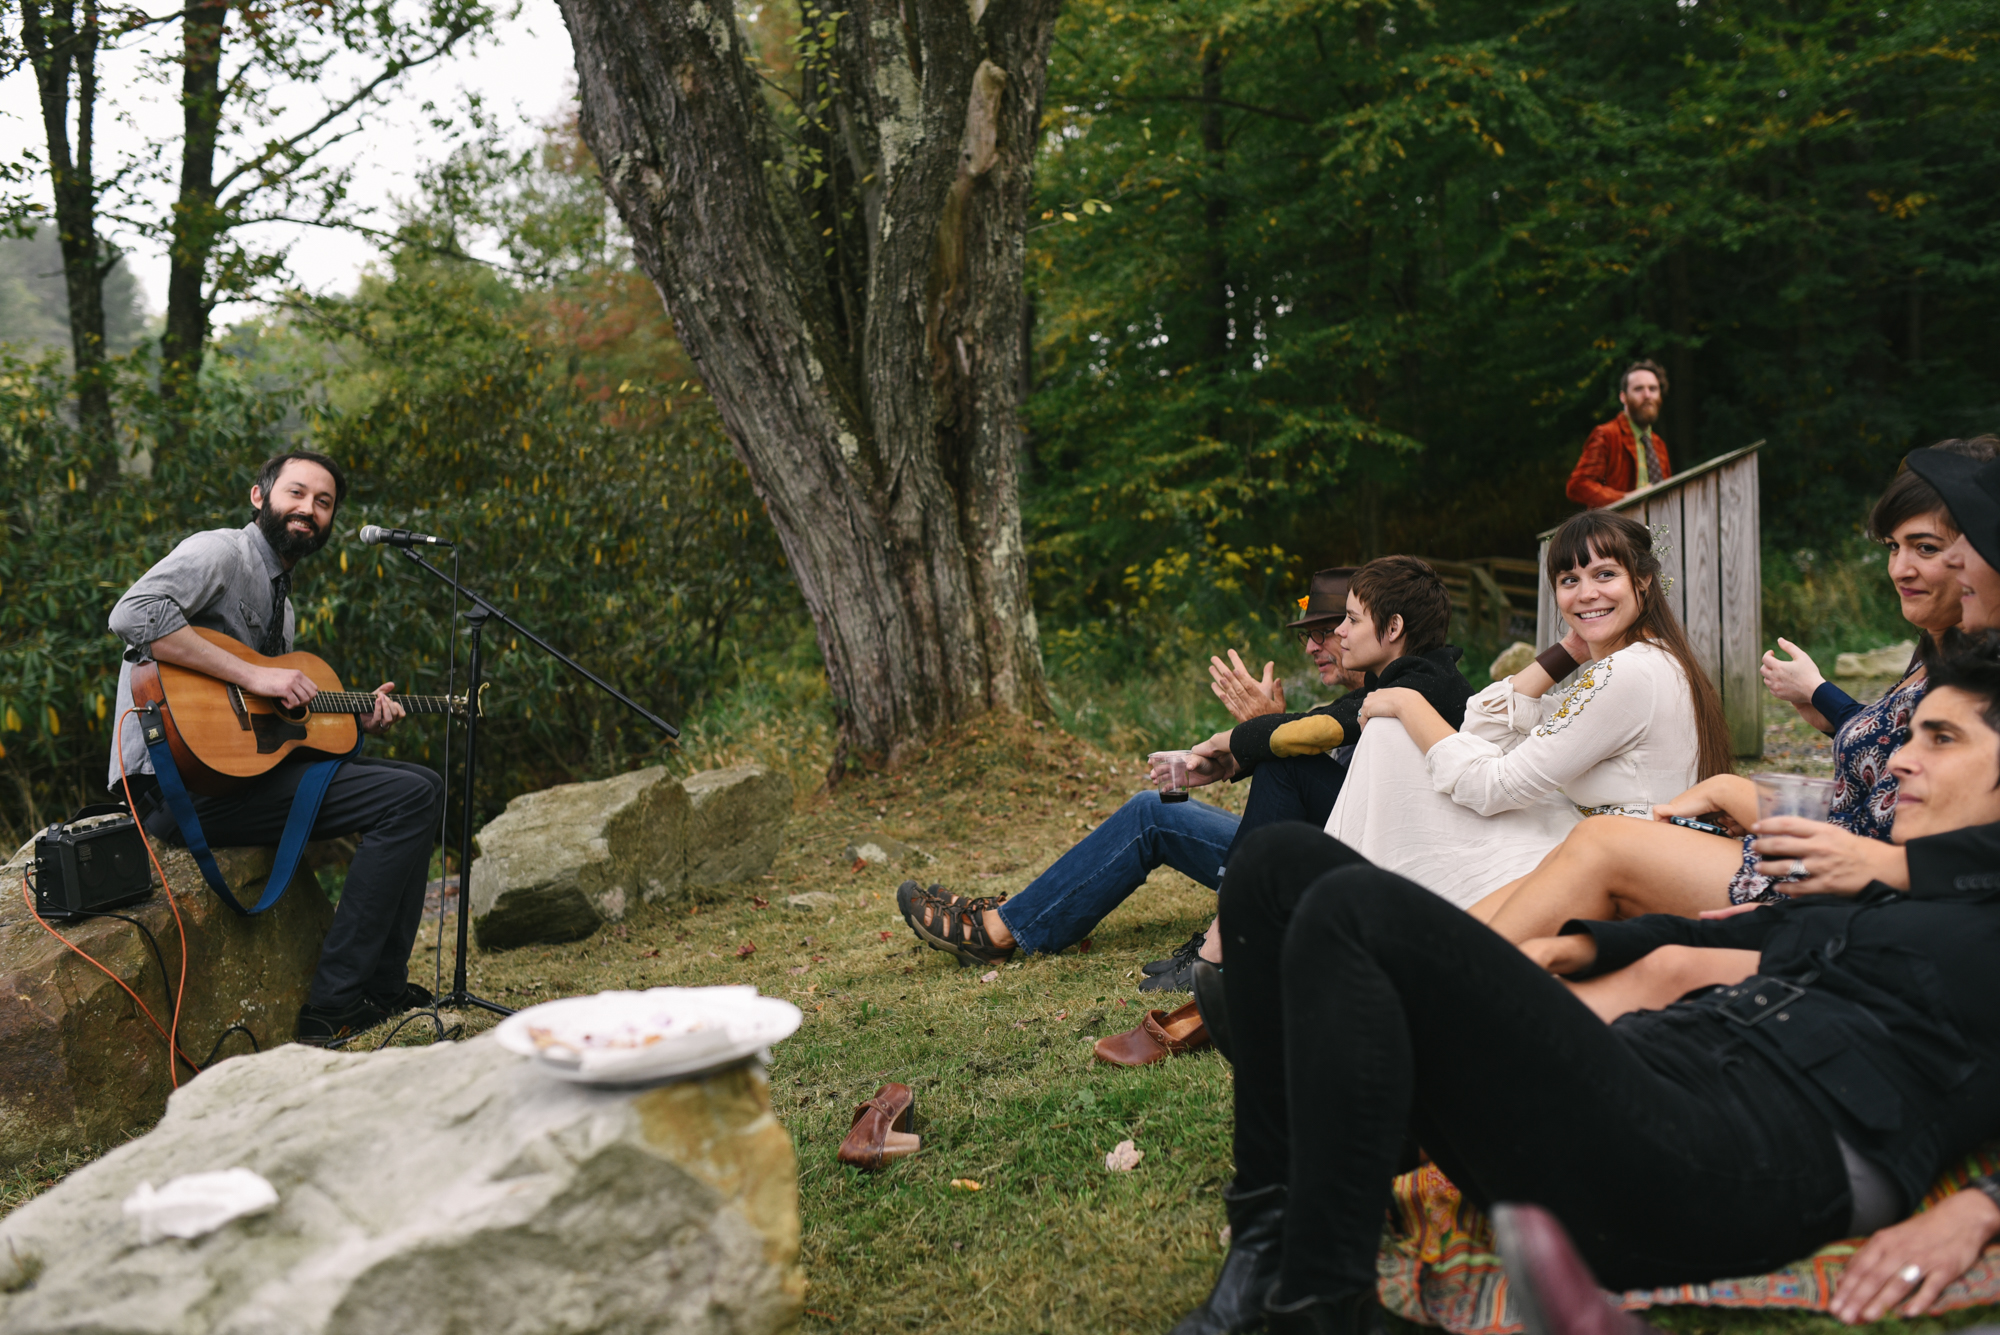 Mountain Wedding, Outdoors, Rustic, West Virginia, Maryland Wedding Photographer, DIY, Casual, guests sitting in grass outside, friend playing guitar